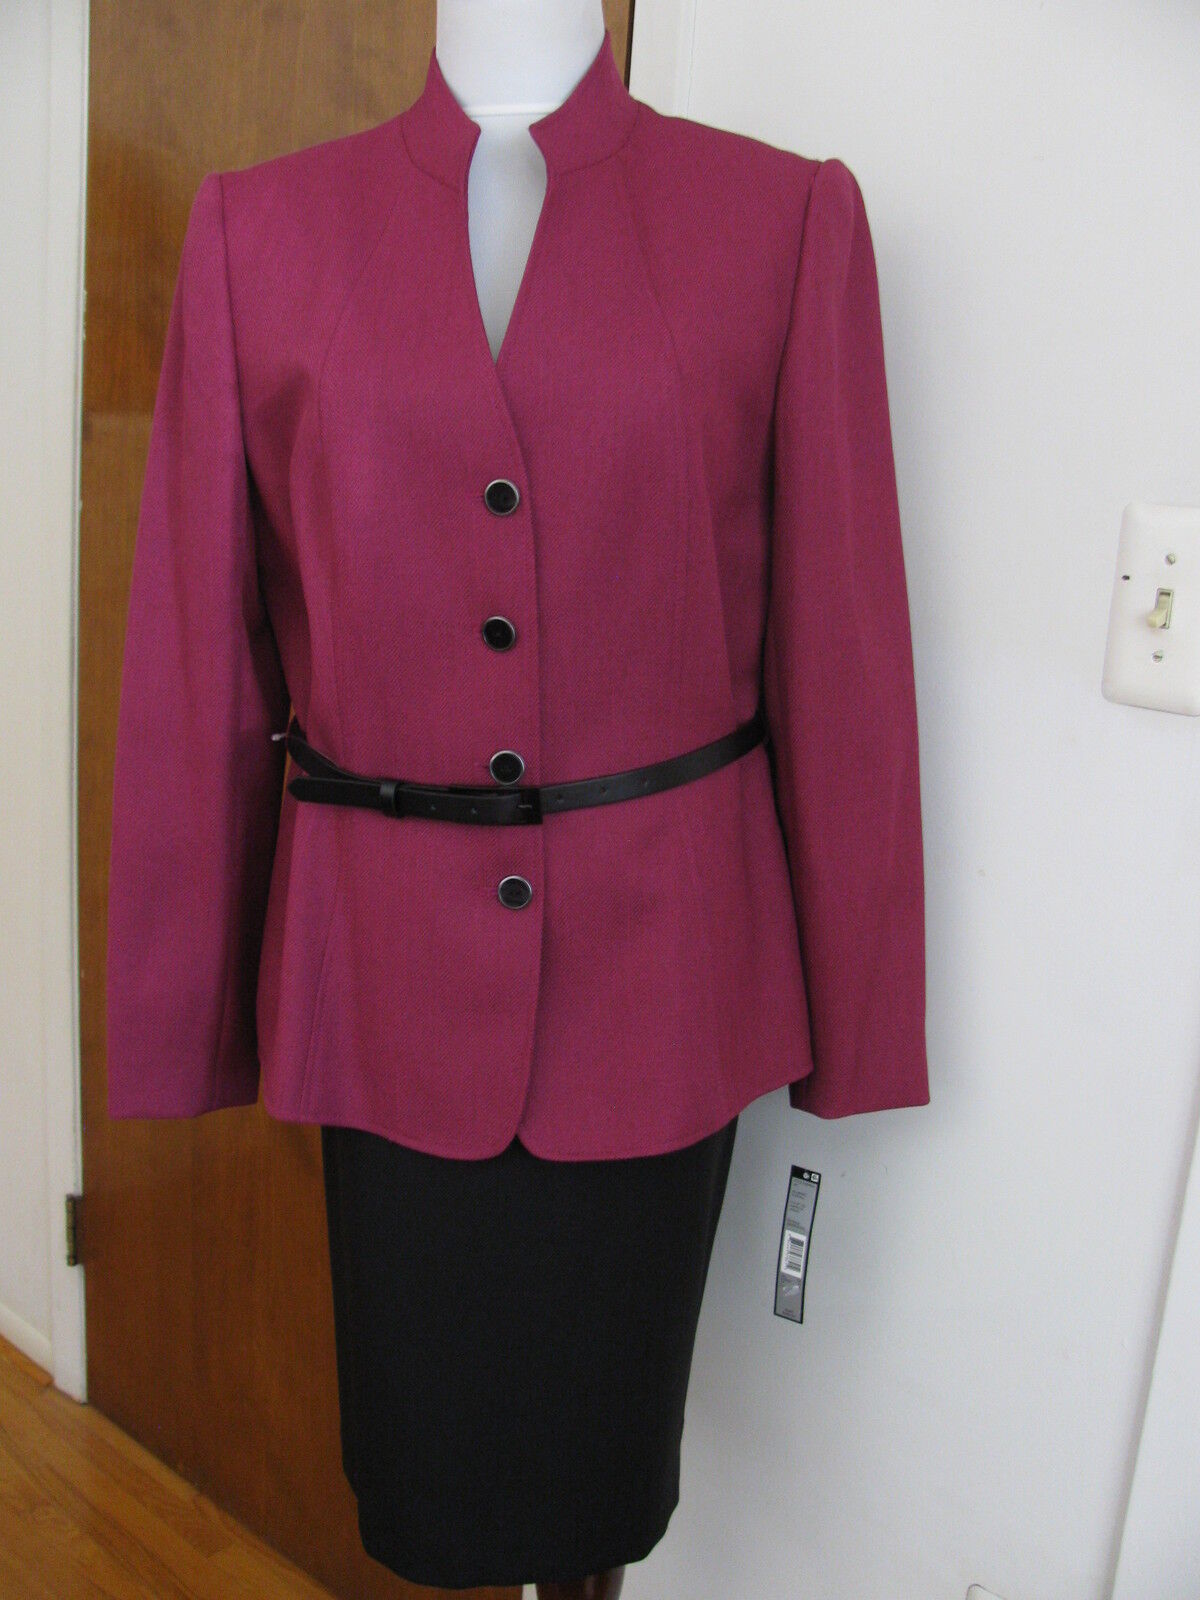 Tahari Asl Women's Purple Belted 2 Piece Skirt Suit Size 12 NWT